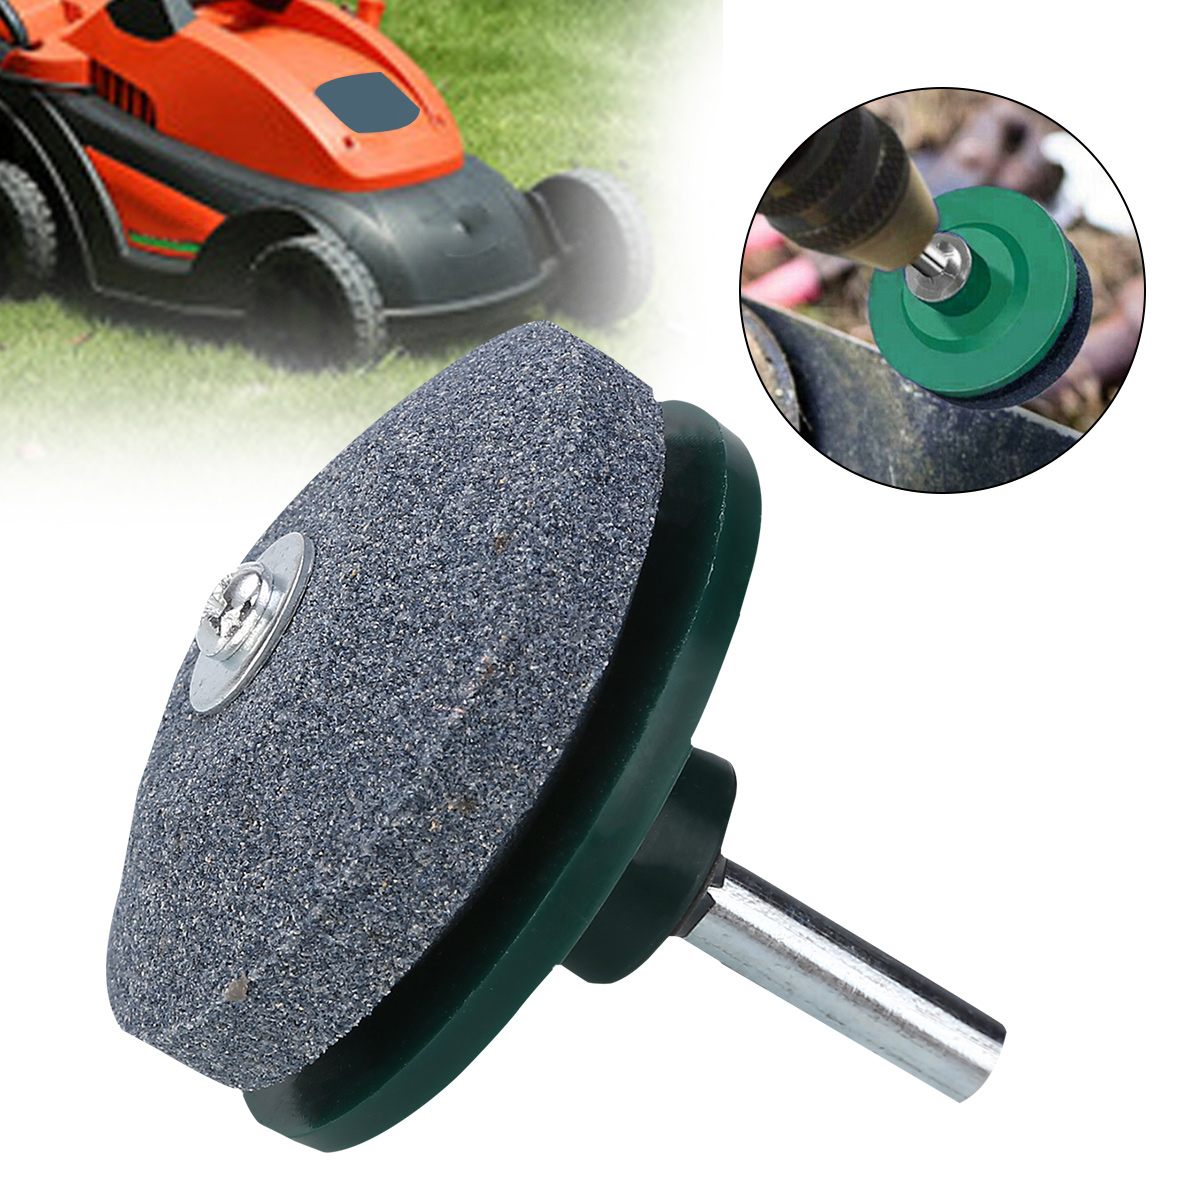 1Pcs Grinding Drill Sharpener Lawnmower Faster Rotary Drill Blade Sharpener Grinder Abrasive Tool Garden Lawn Mower Part 50*47mm